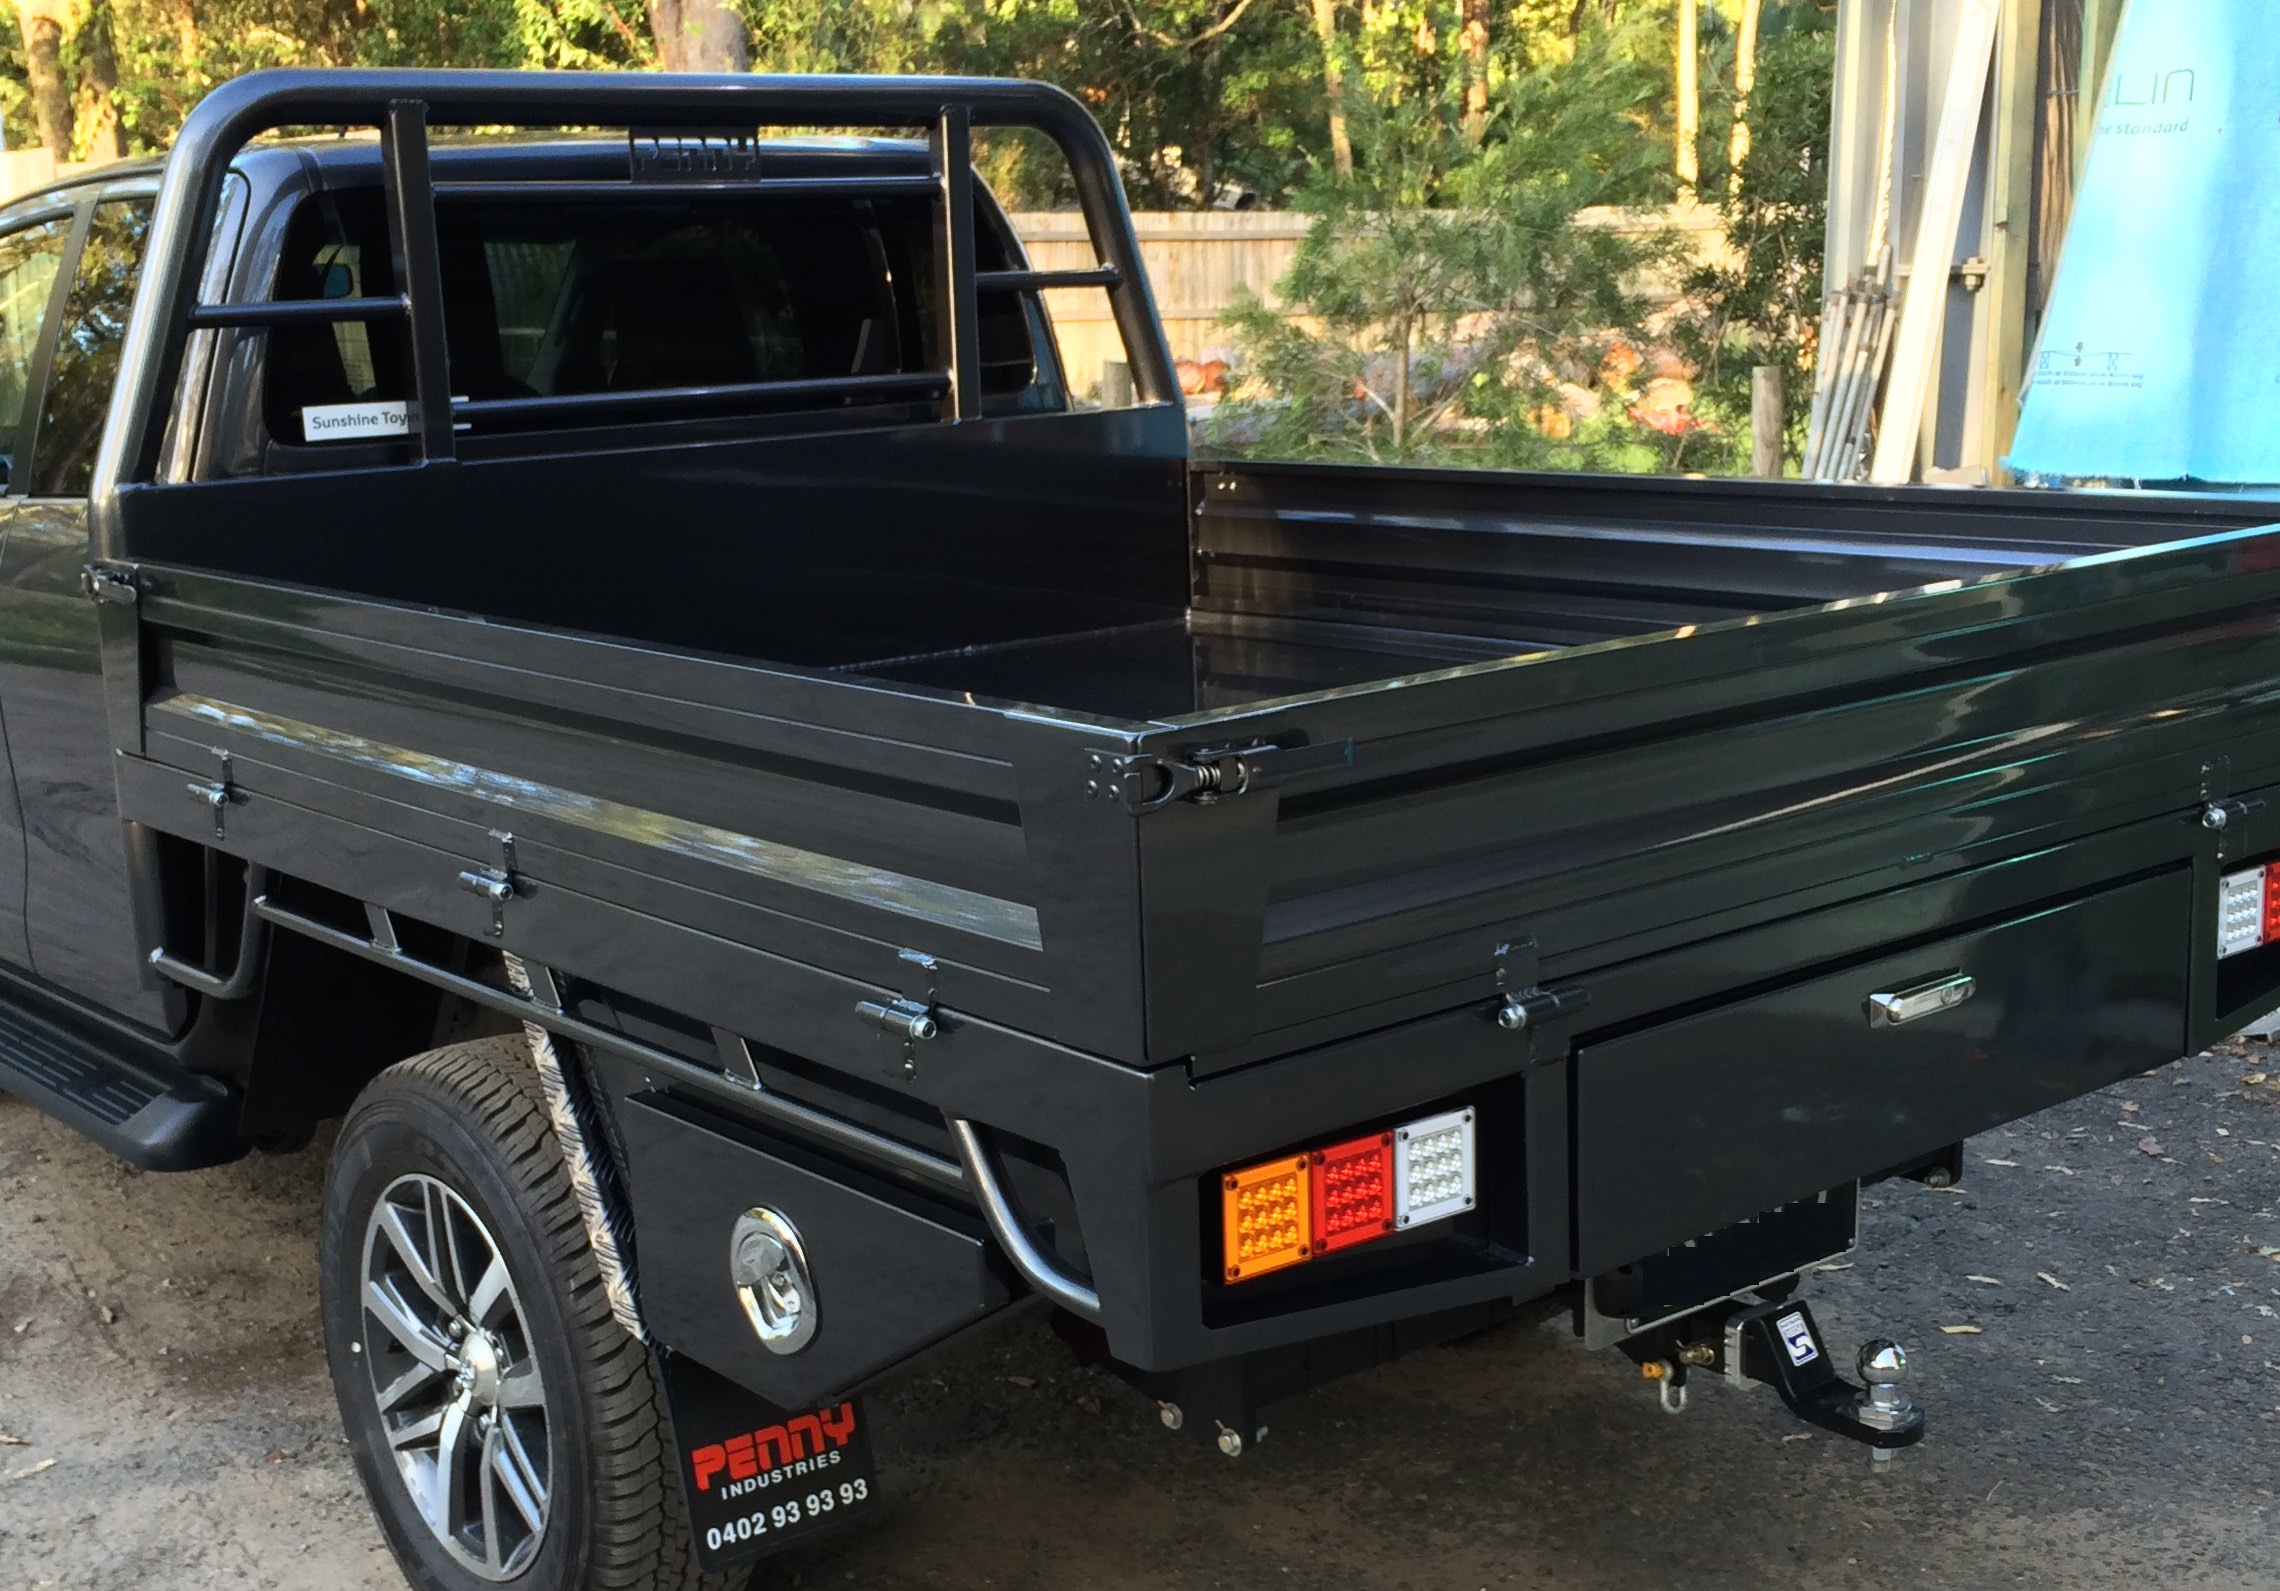 Photos - Tray - Toyota Hilux - Penny Industries